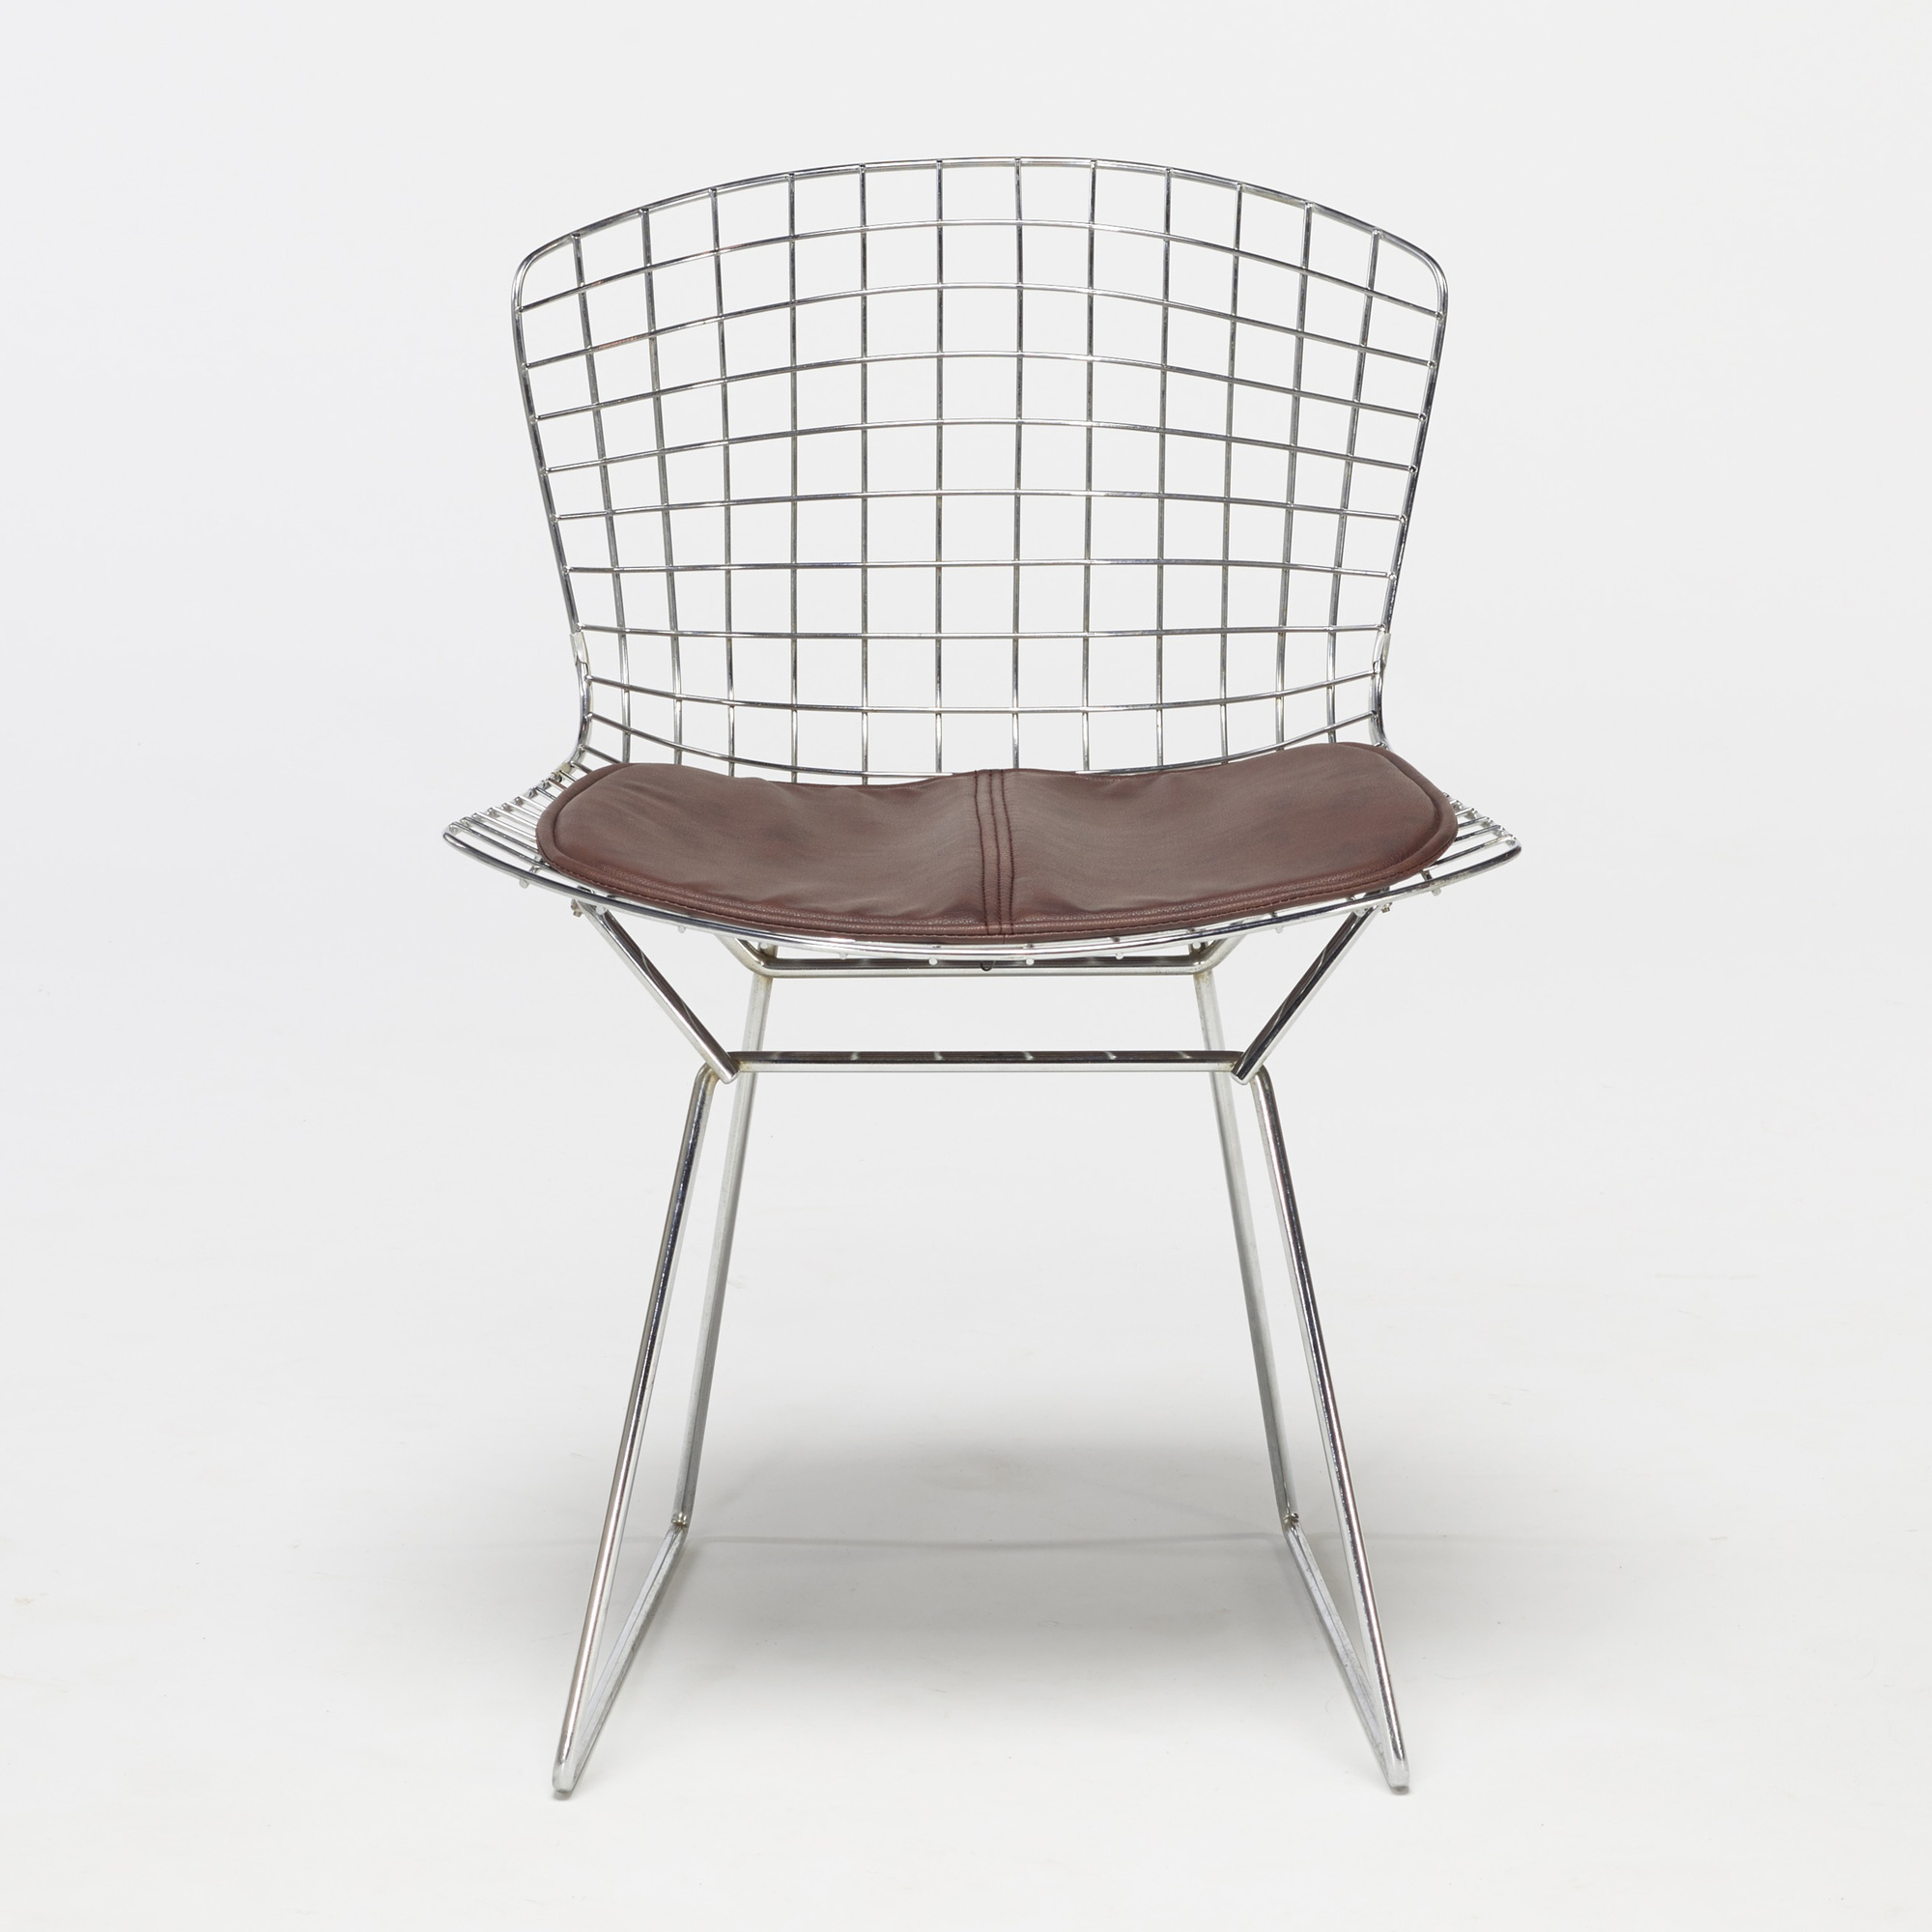 171: Harry Bertoia / dining chairs, set of eight (3 of 3)